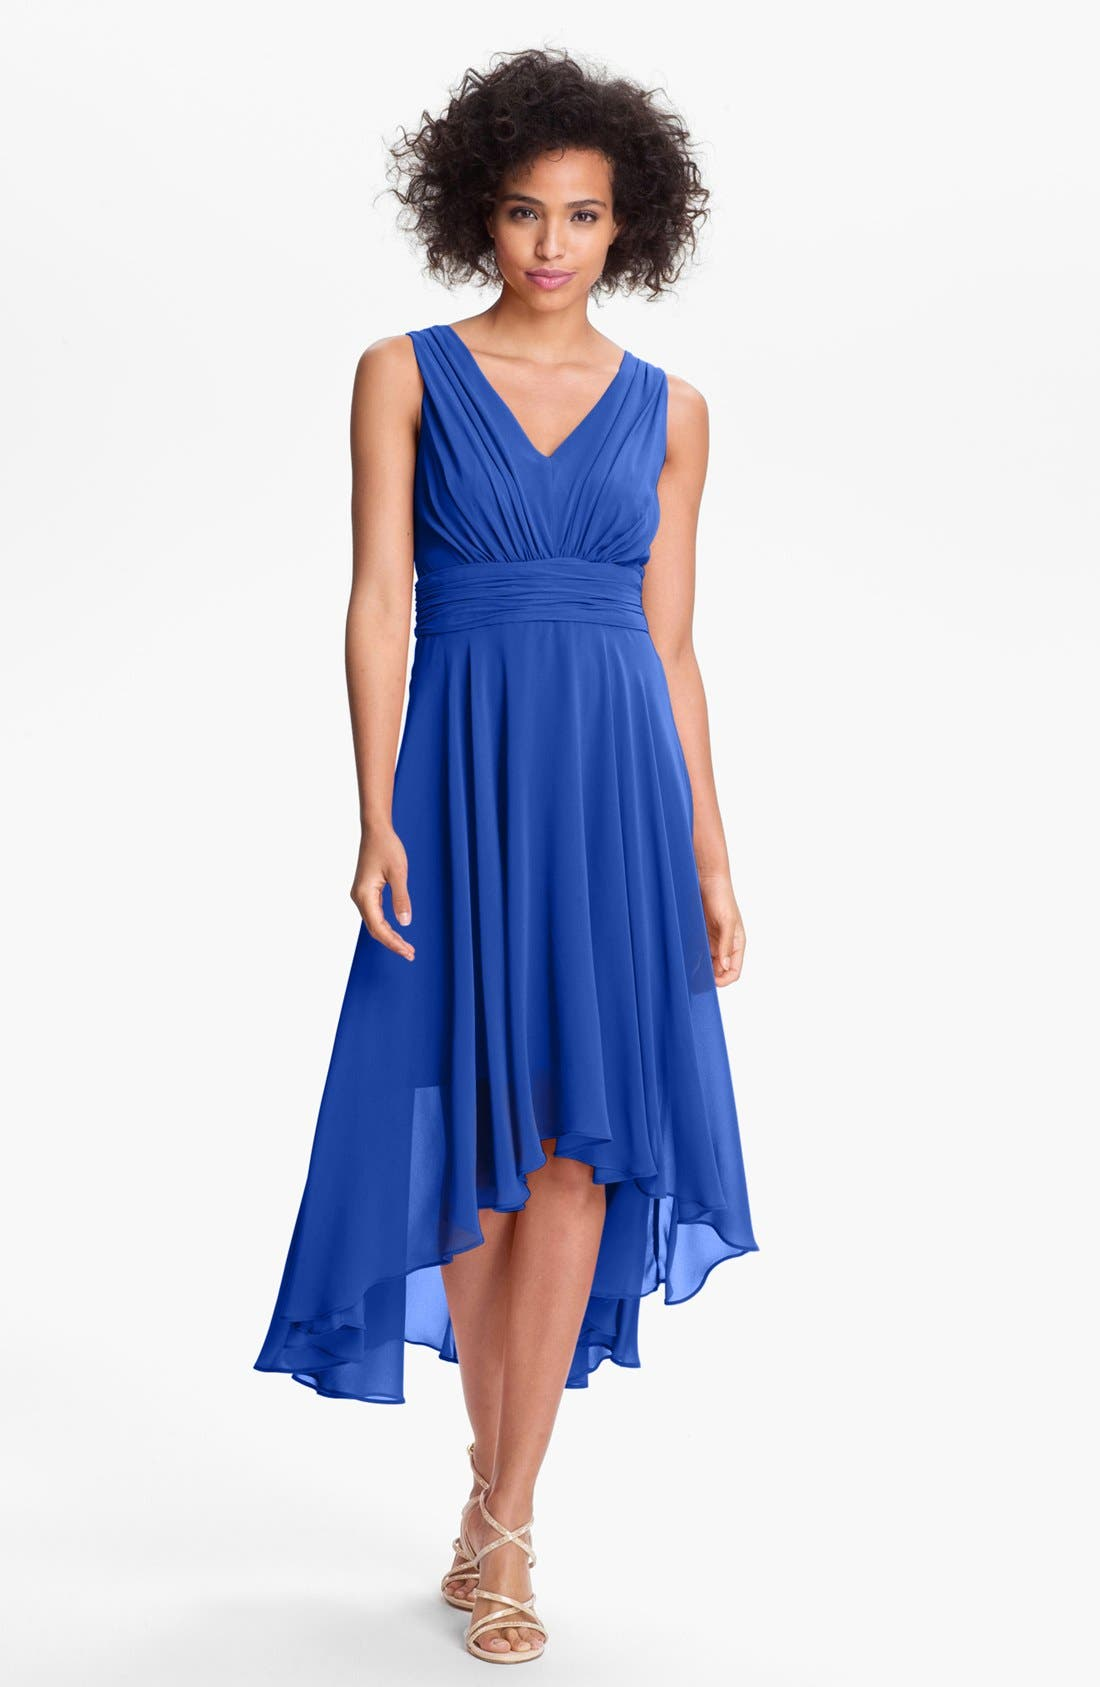 Alternate Image 1 Selected - Ivy & Blu High/Low Chiffon Dress (Regular & Petite)